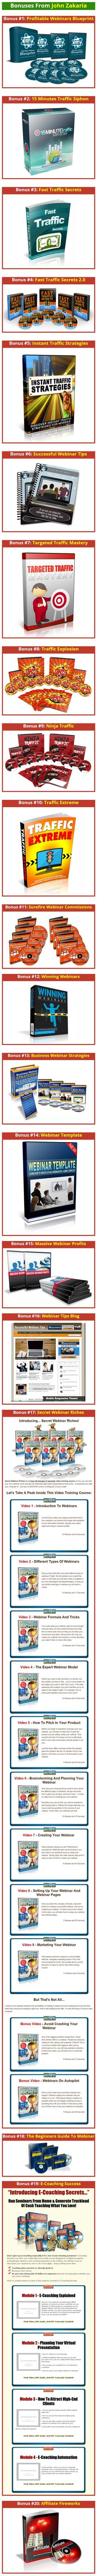 Run A Webinar Review+BEST BONUS+Discount - Run Unlimited Profitable Webinars Without Google Hangouts Warrior Forum Classified Ads